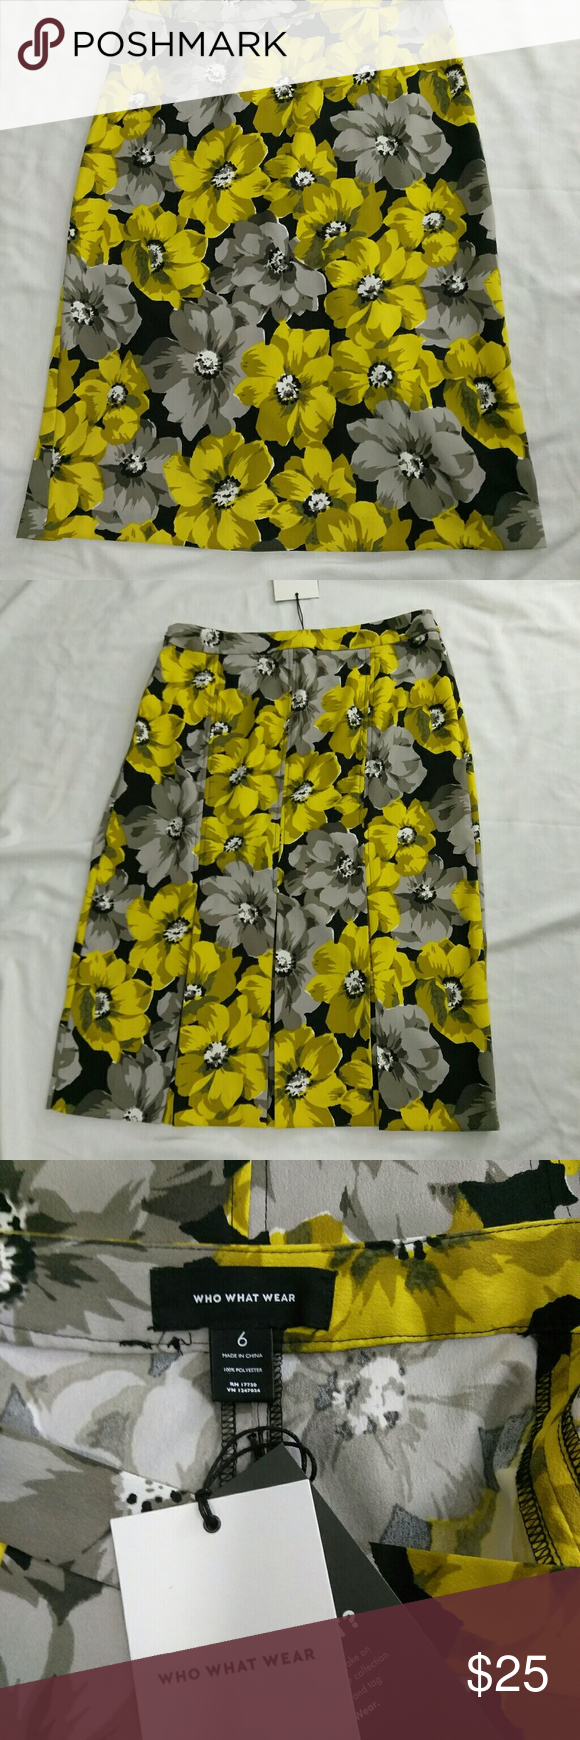 1638a906f9af Black Skirt Yellow Flowers | Gardening: Flower and Vegetables